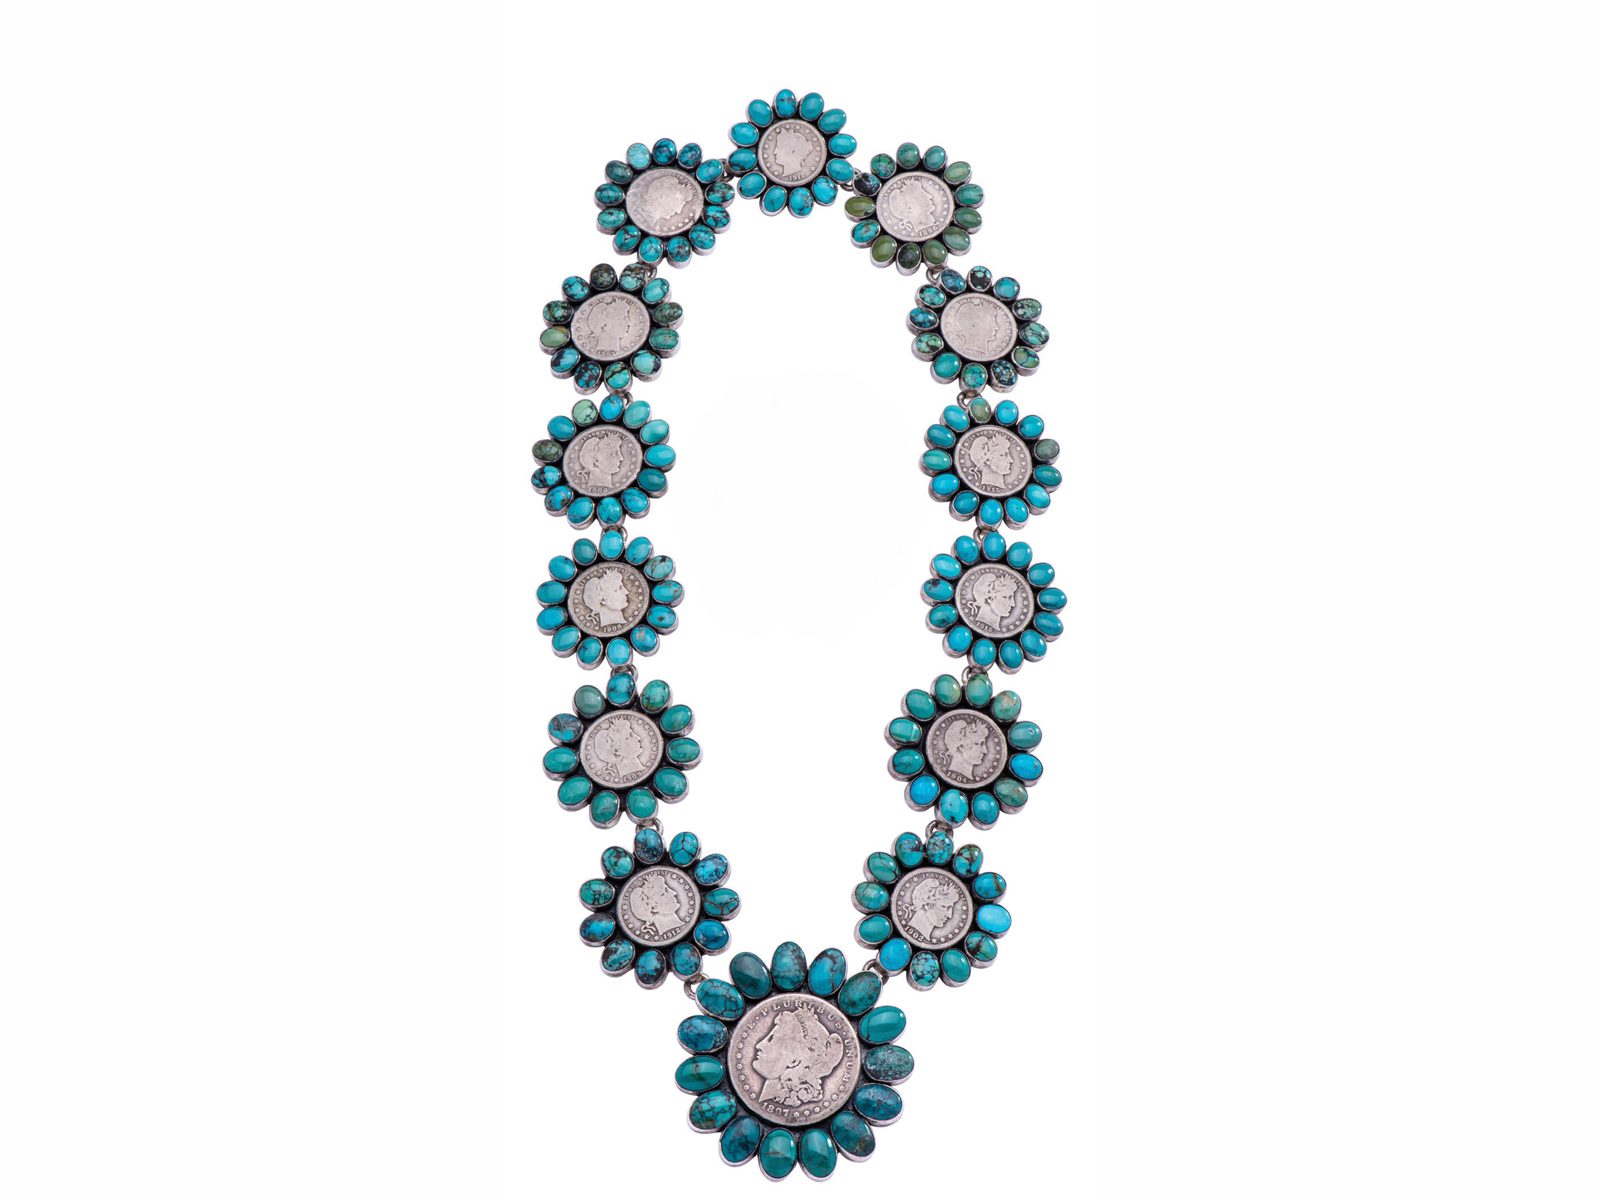 Liberty Coin Turquoise Necklace